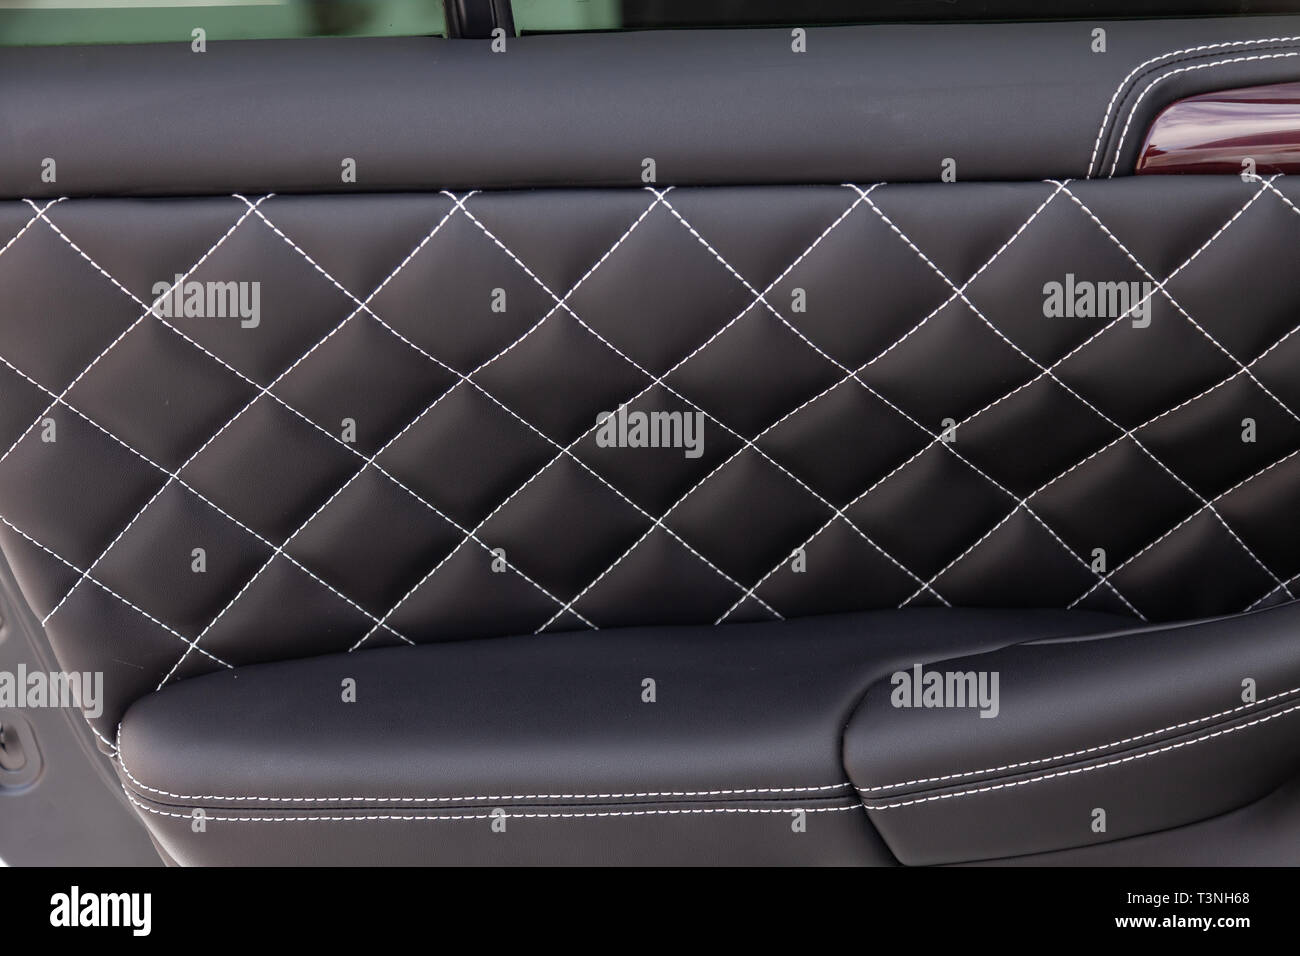 Interior Of A Luxury Car With Leather Interior Overtightened Stitching In The Form Of A Diamond Of White Thread At Door Trim In A Vehicle Repair Shop Stock Photo Alamy